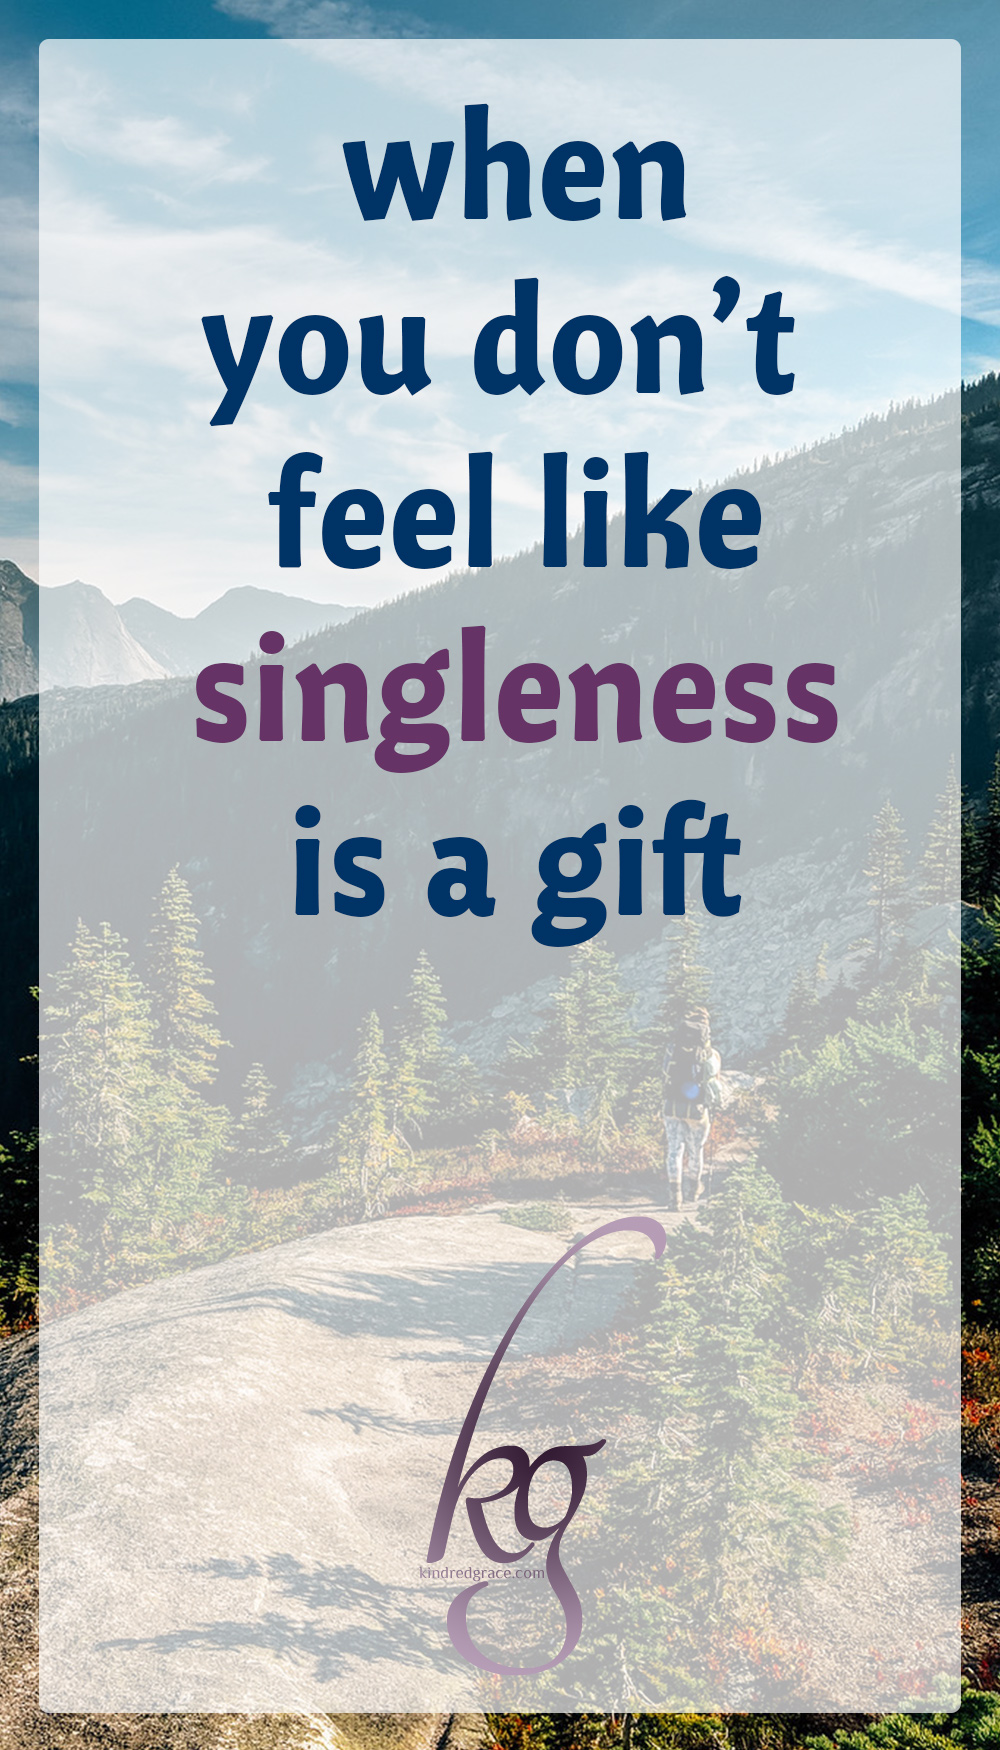 when you don't feel like singleness is a gift via @KindredGrace